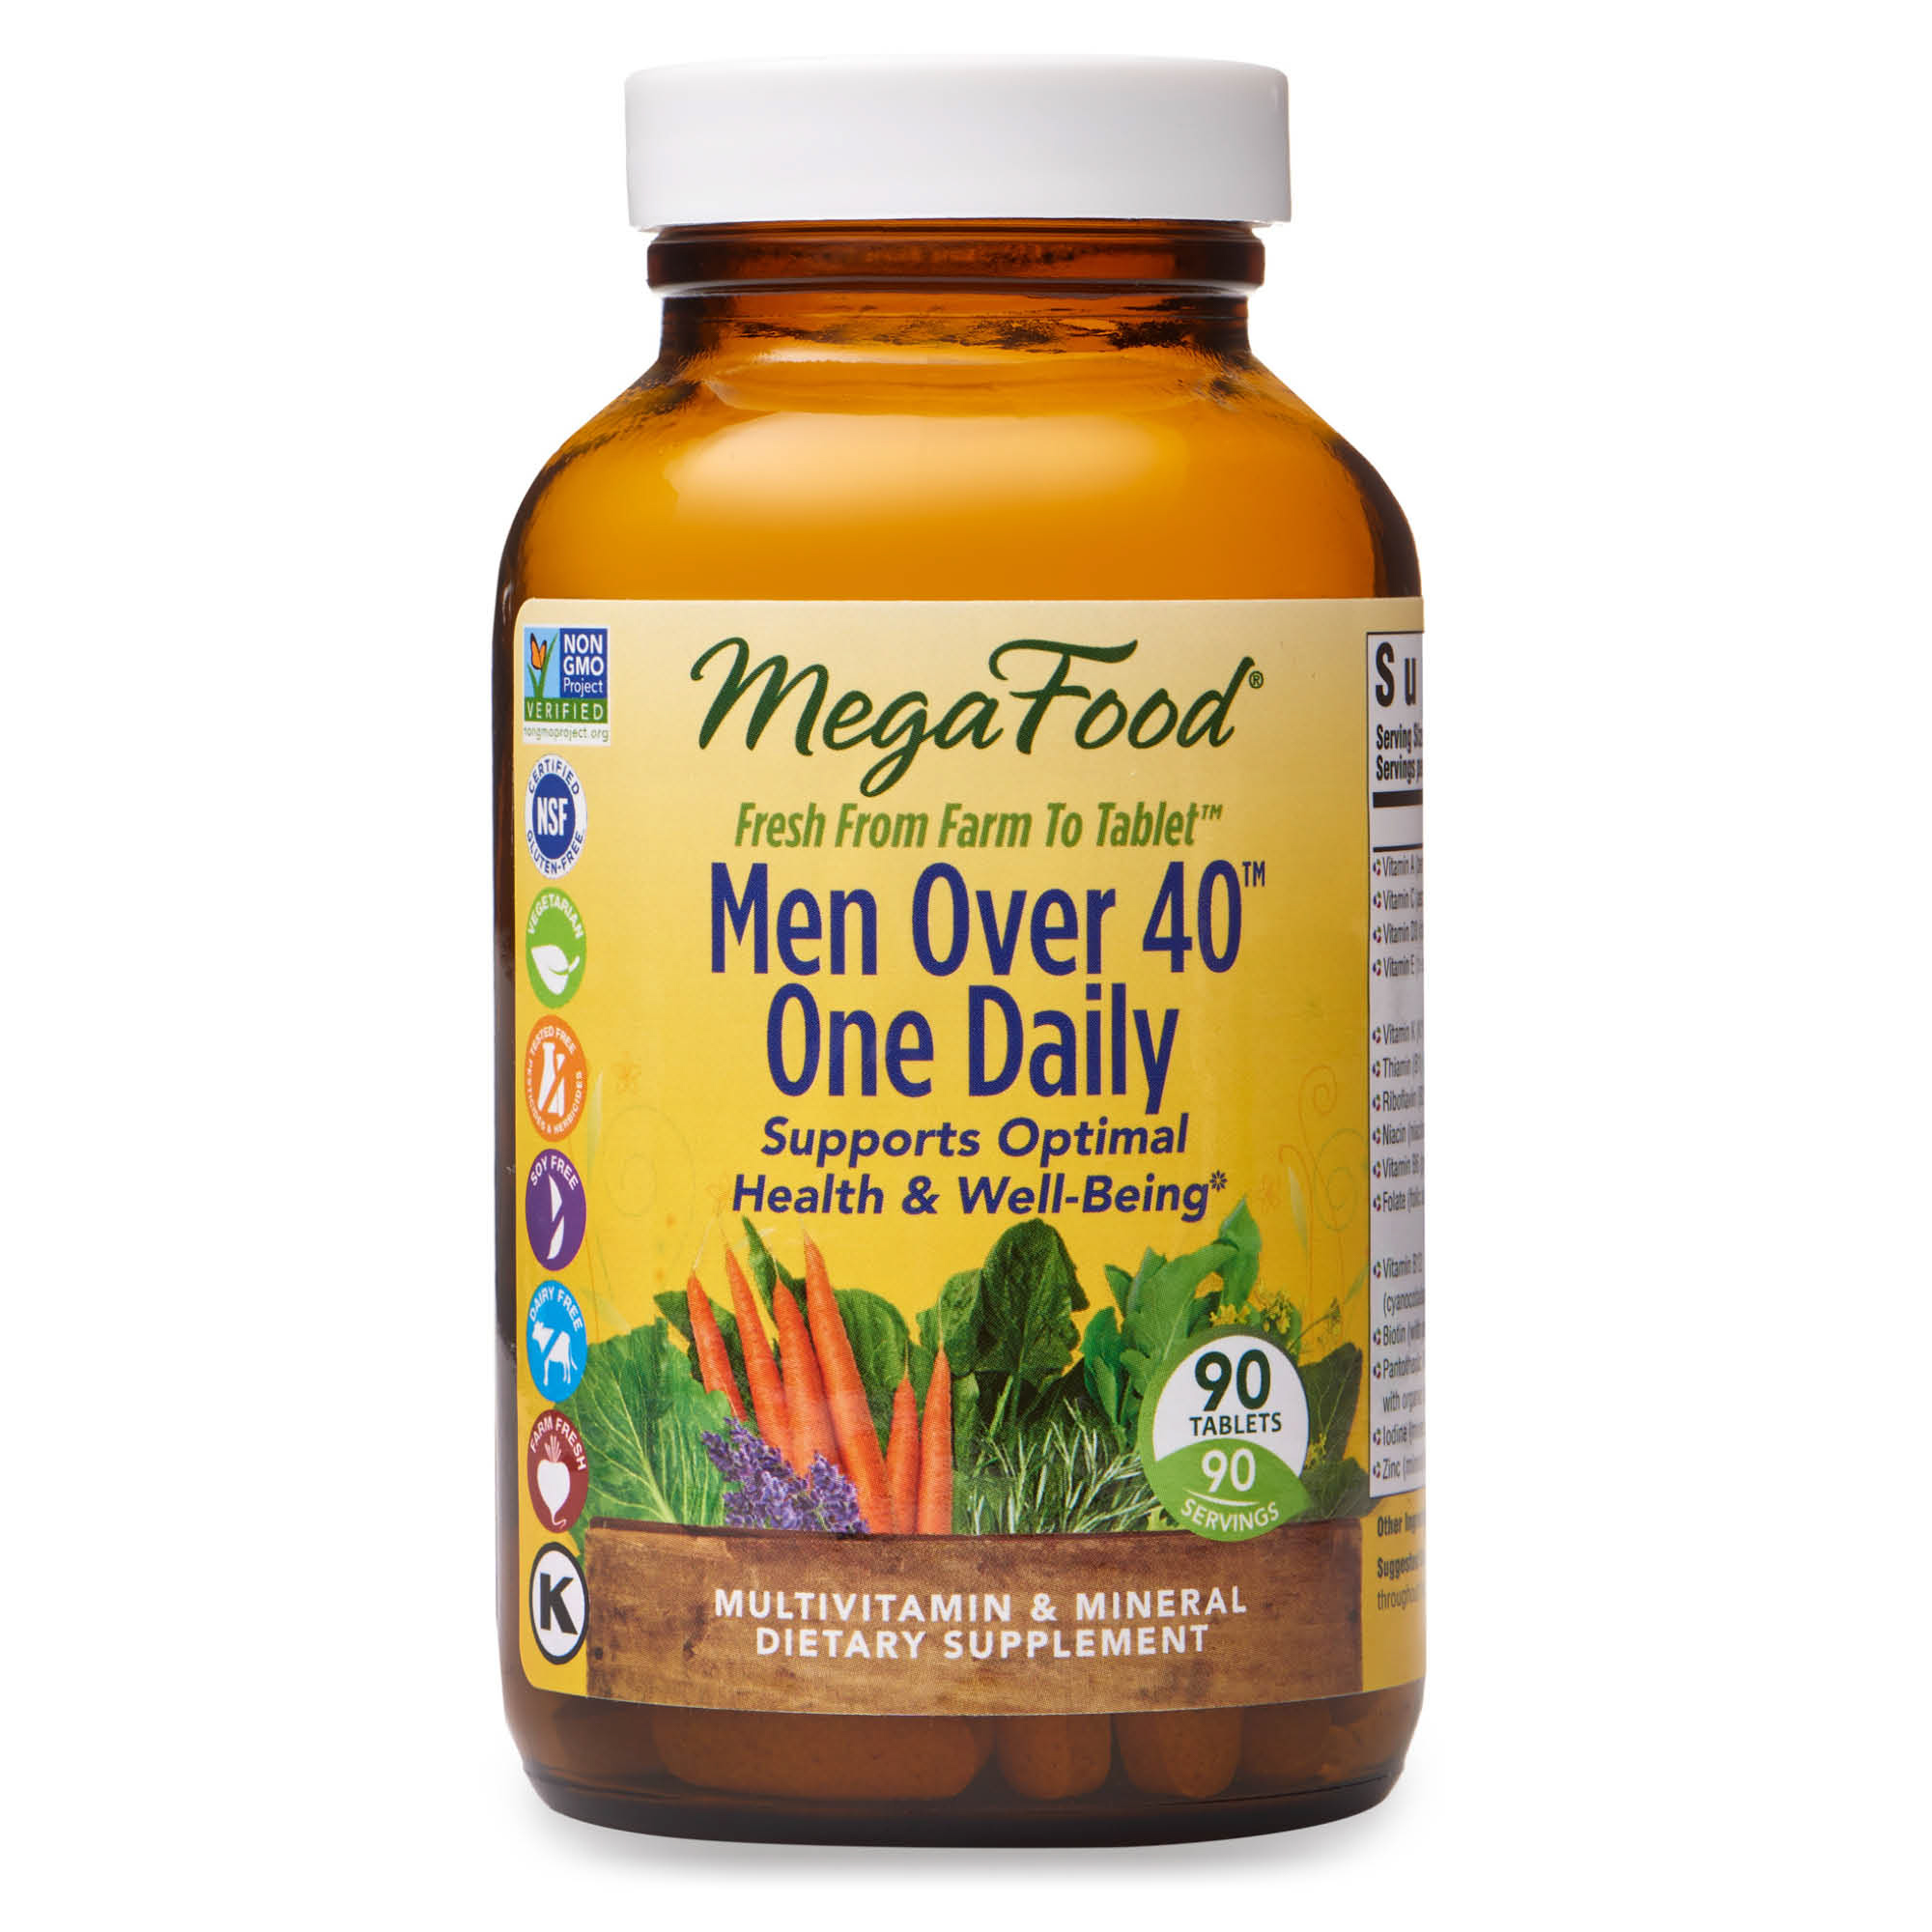 Megafood Men Over 40 One Daily Daily Multivitamin And